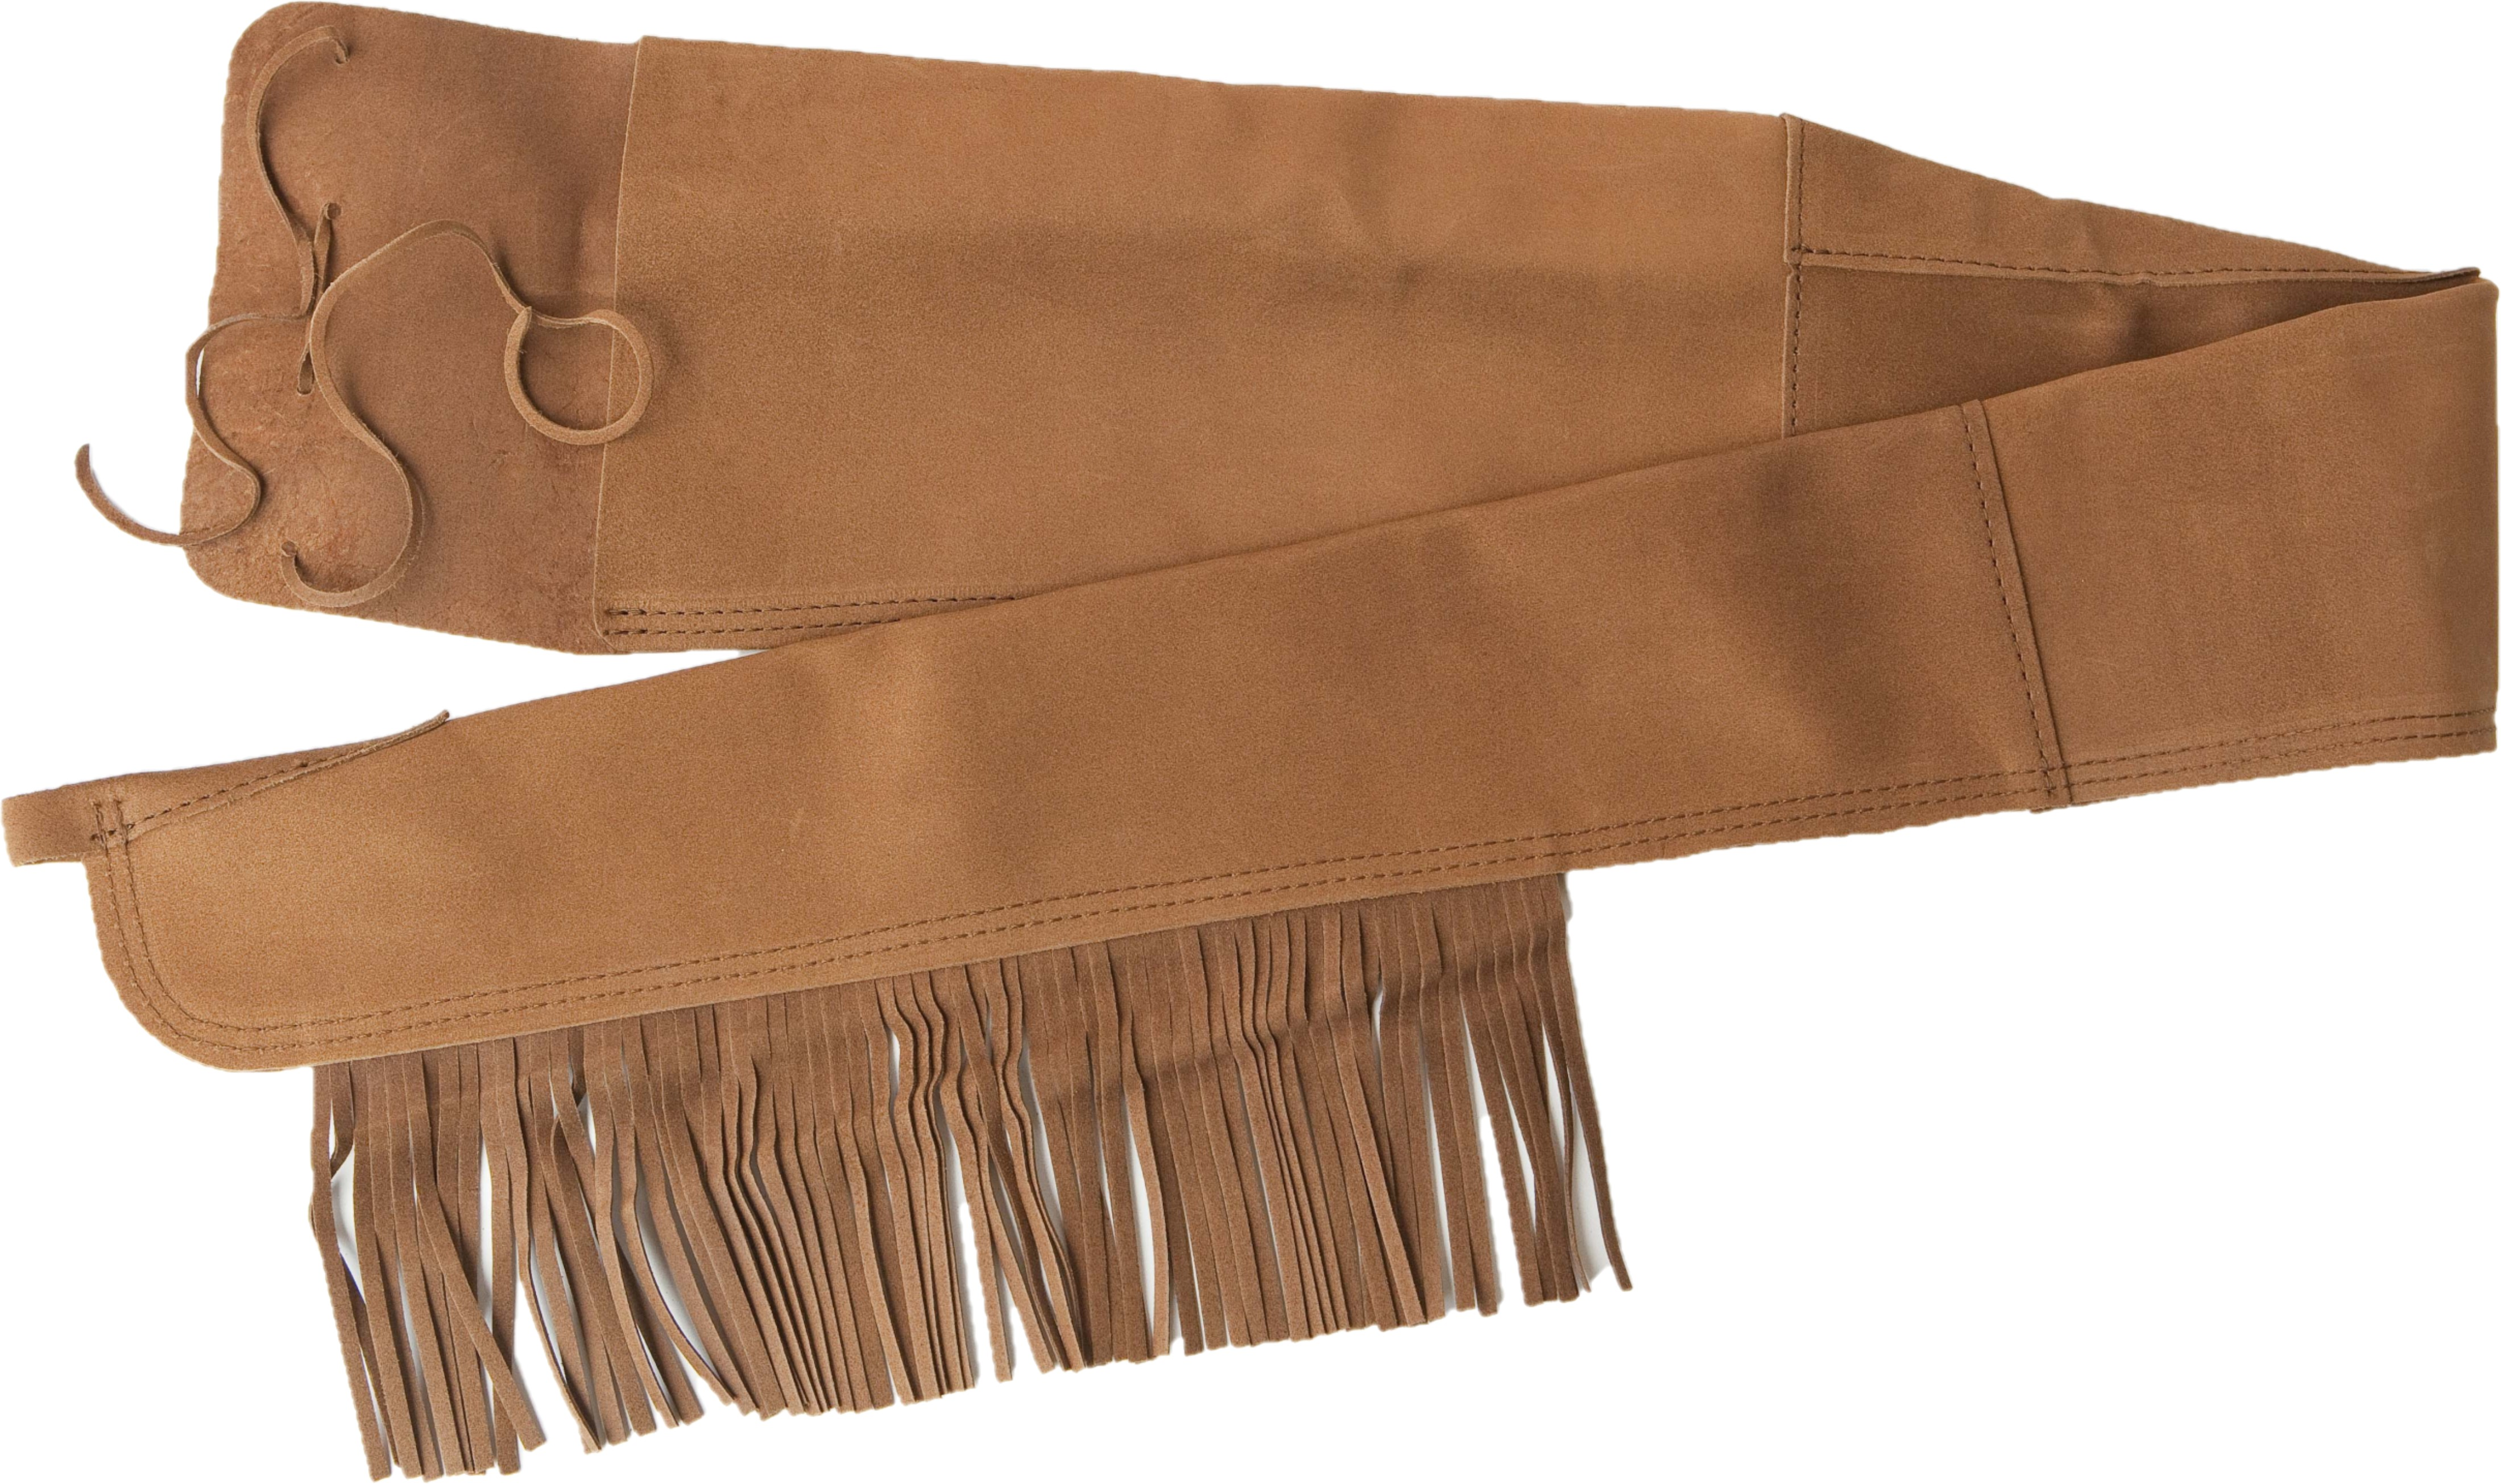 FRINGED RIFLE COVER SUEDE